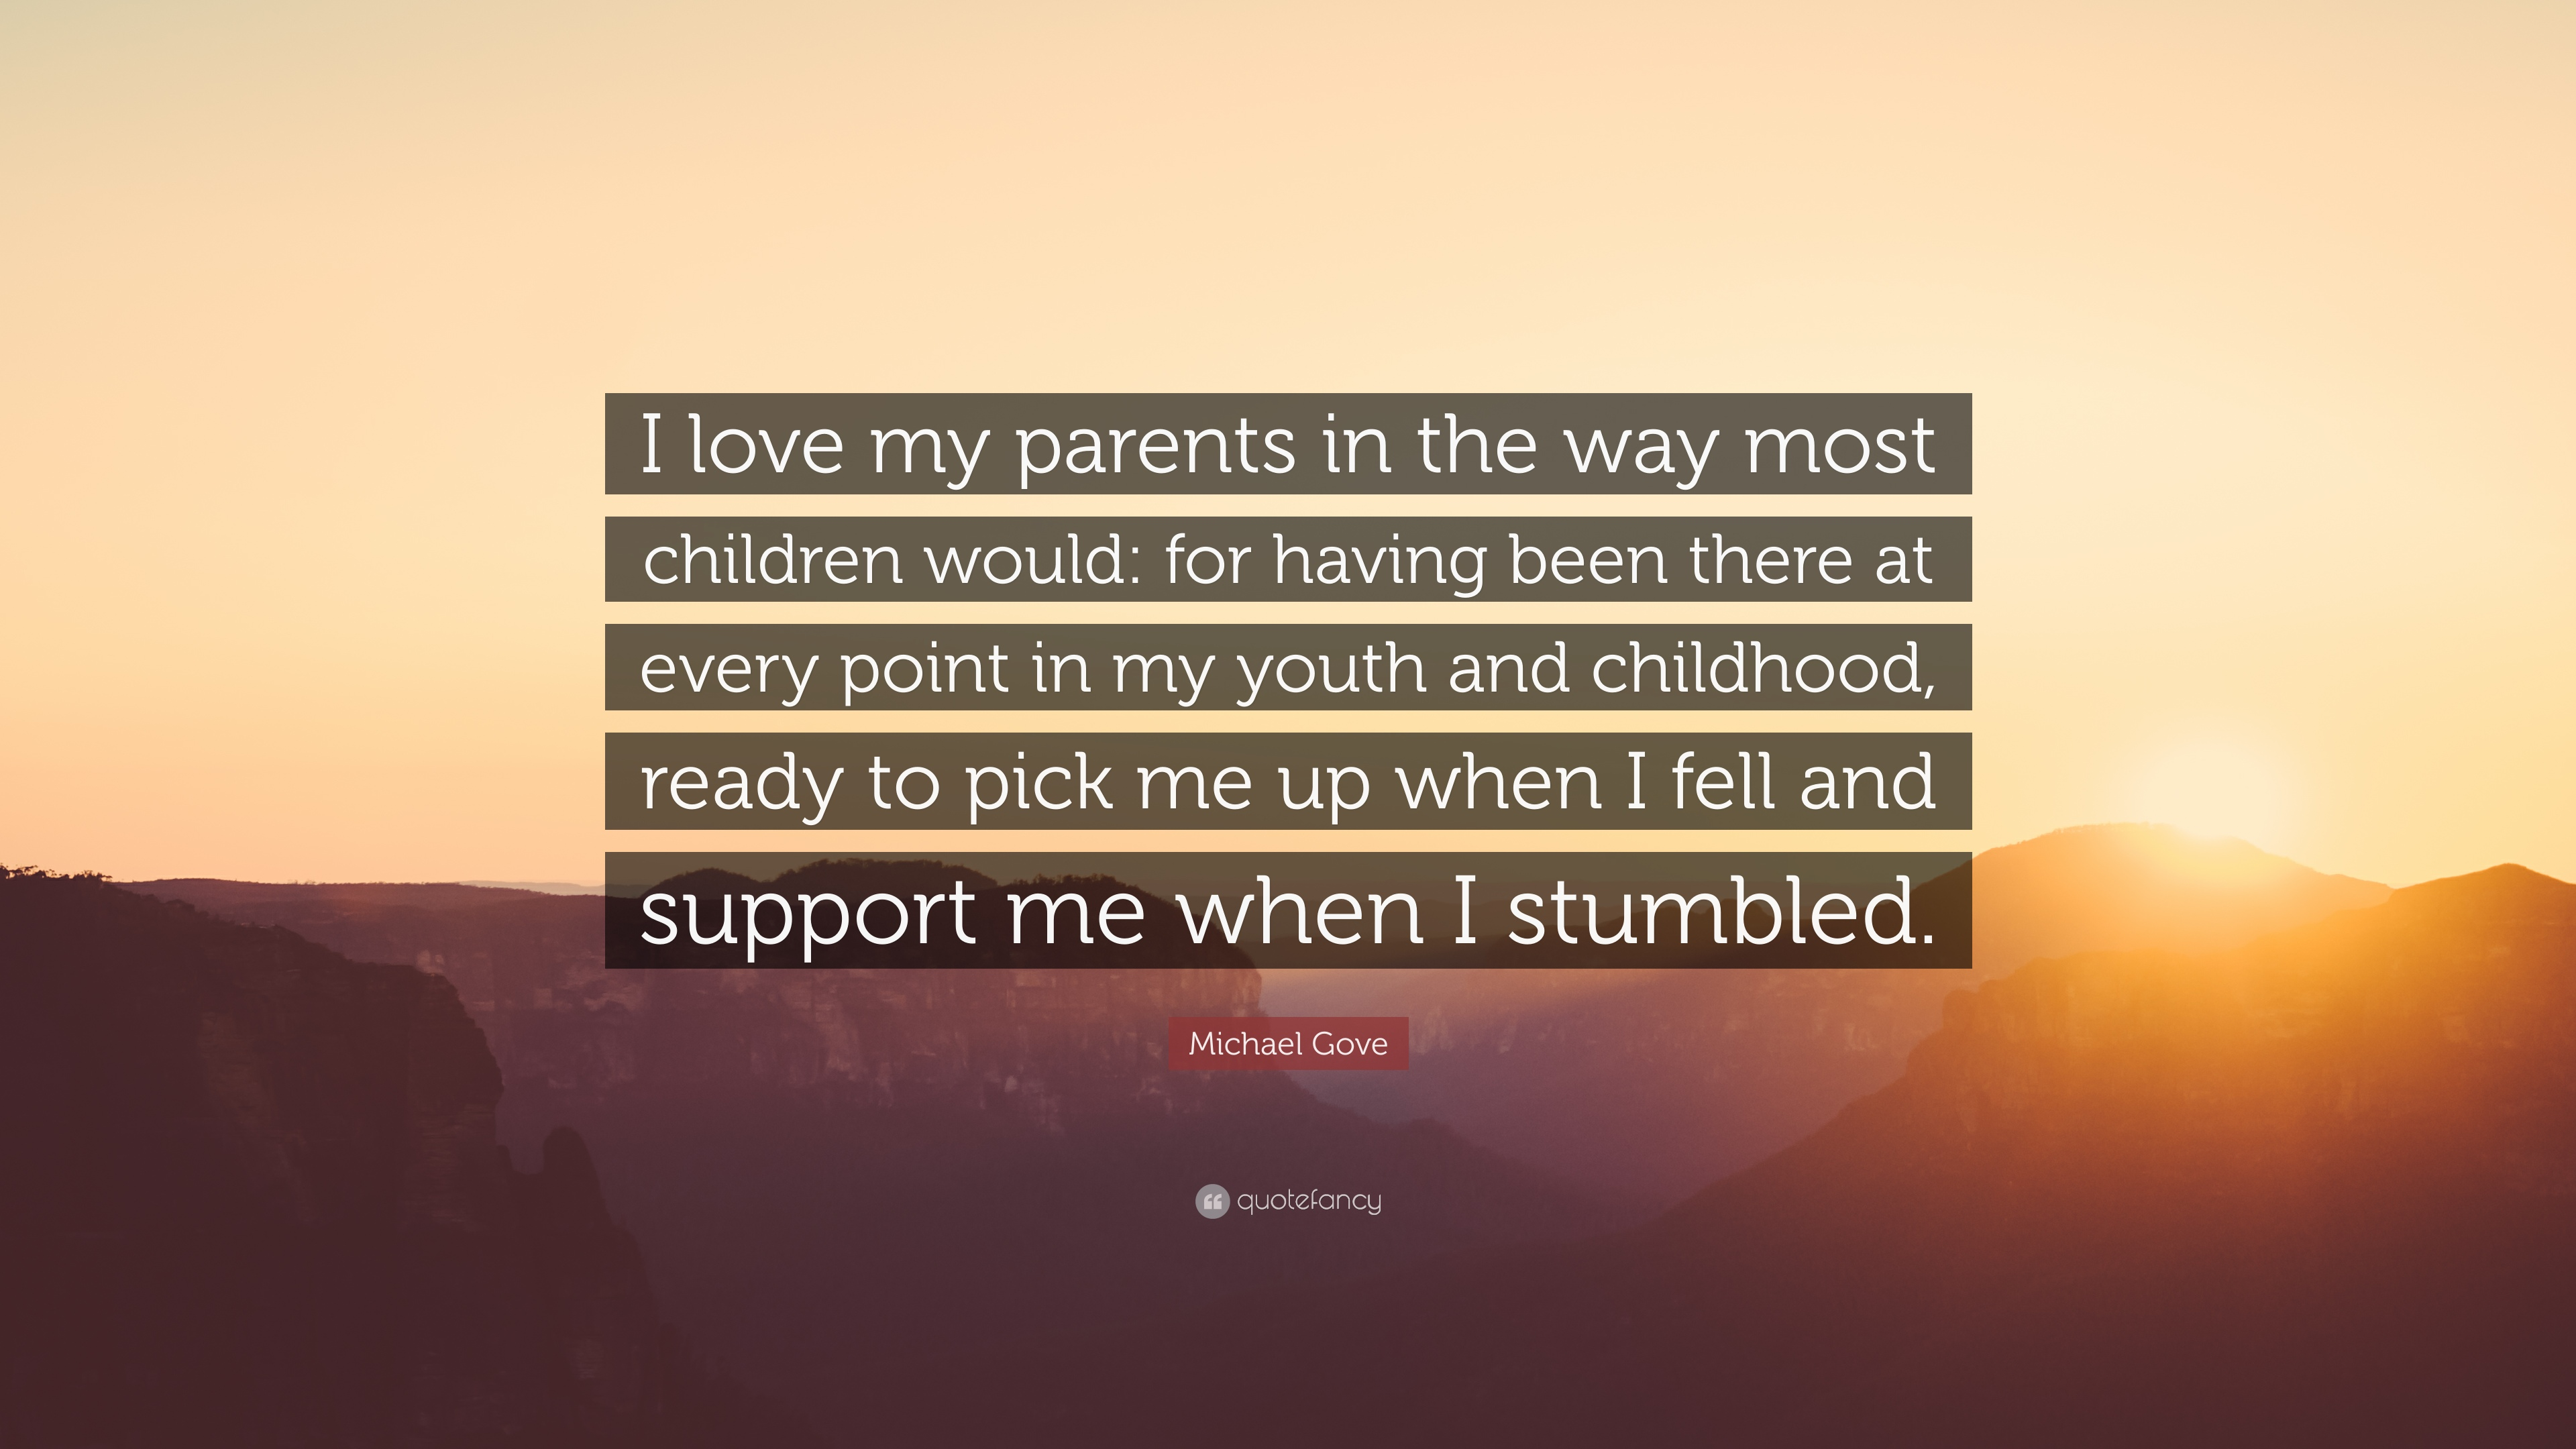 Michael Gove Quote I Love My Parents In The Way Most Children Would For Having Been There At Every Point In My Youth And Childhood Ready 7 Wallpapers Quotefancy